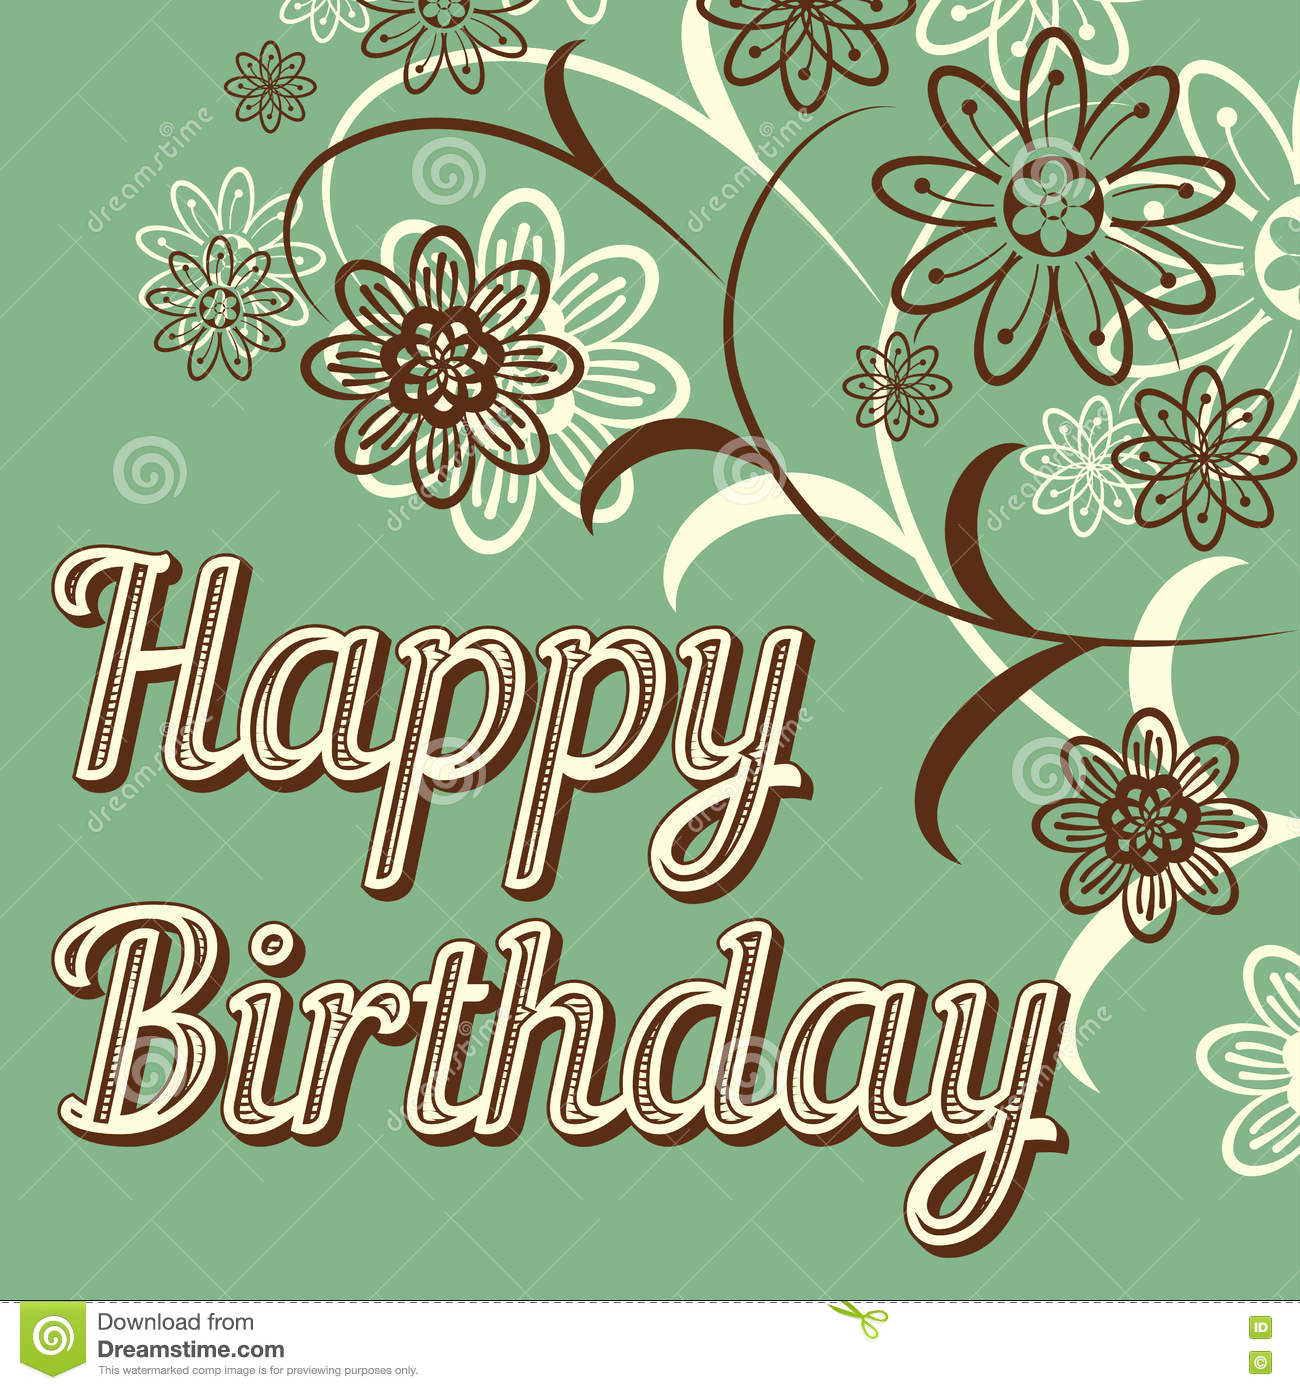 Vintage Retro Happy Birthday Card With Fonts Grunge